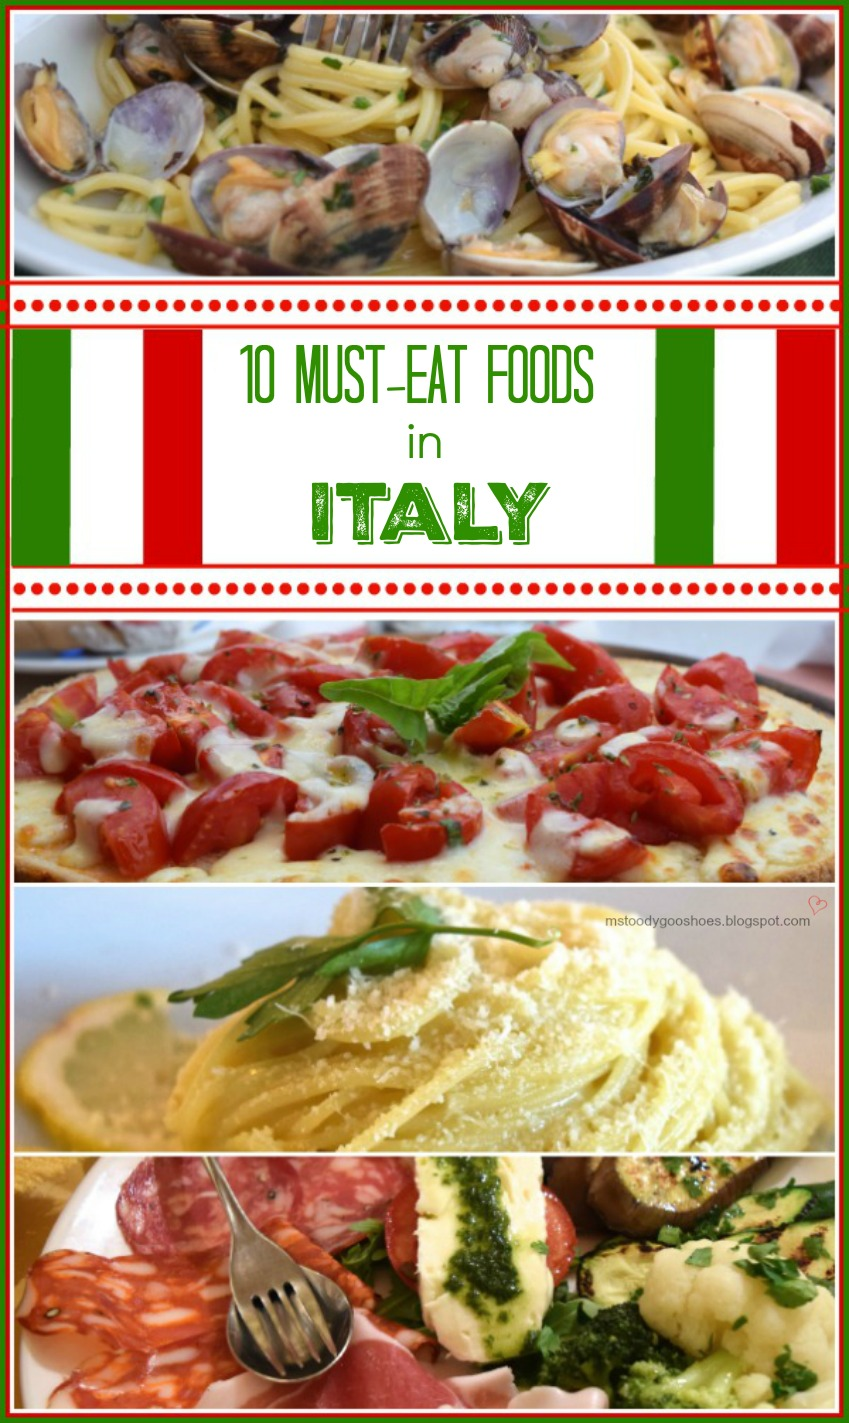 10 Must-Eat Foods In Italy | Ms. Toody Goo Shoes